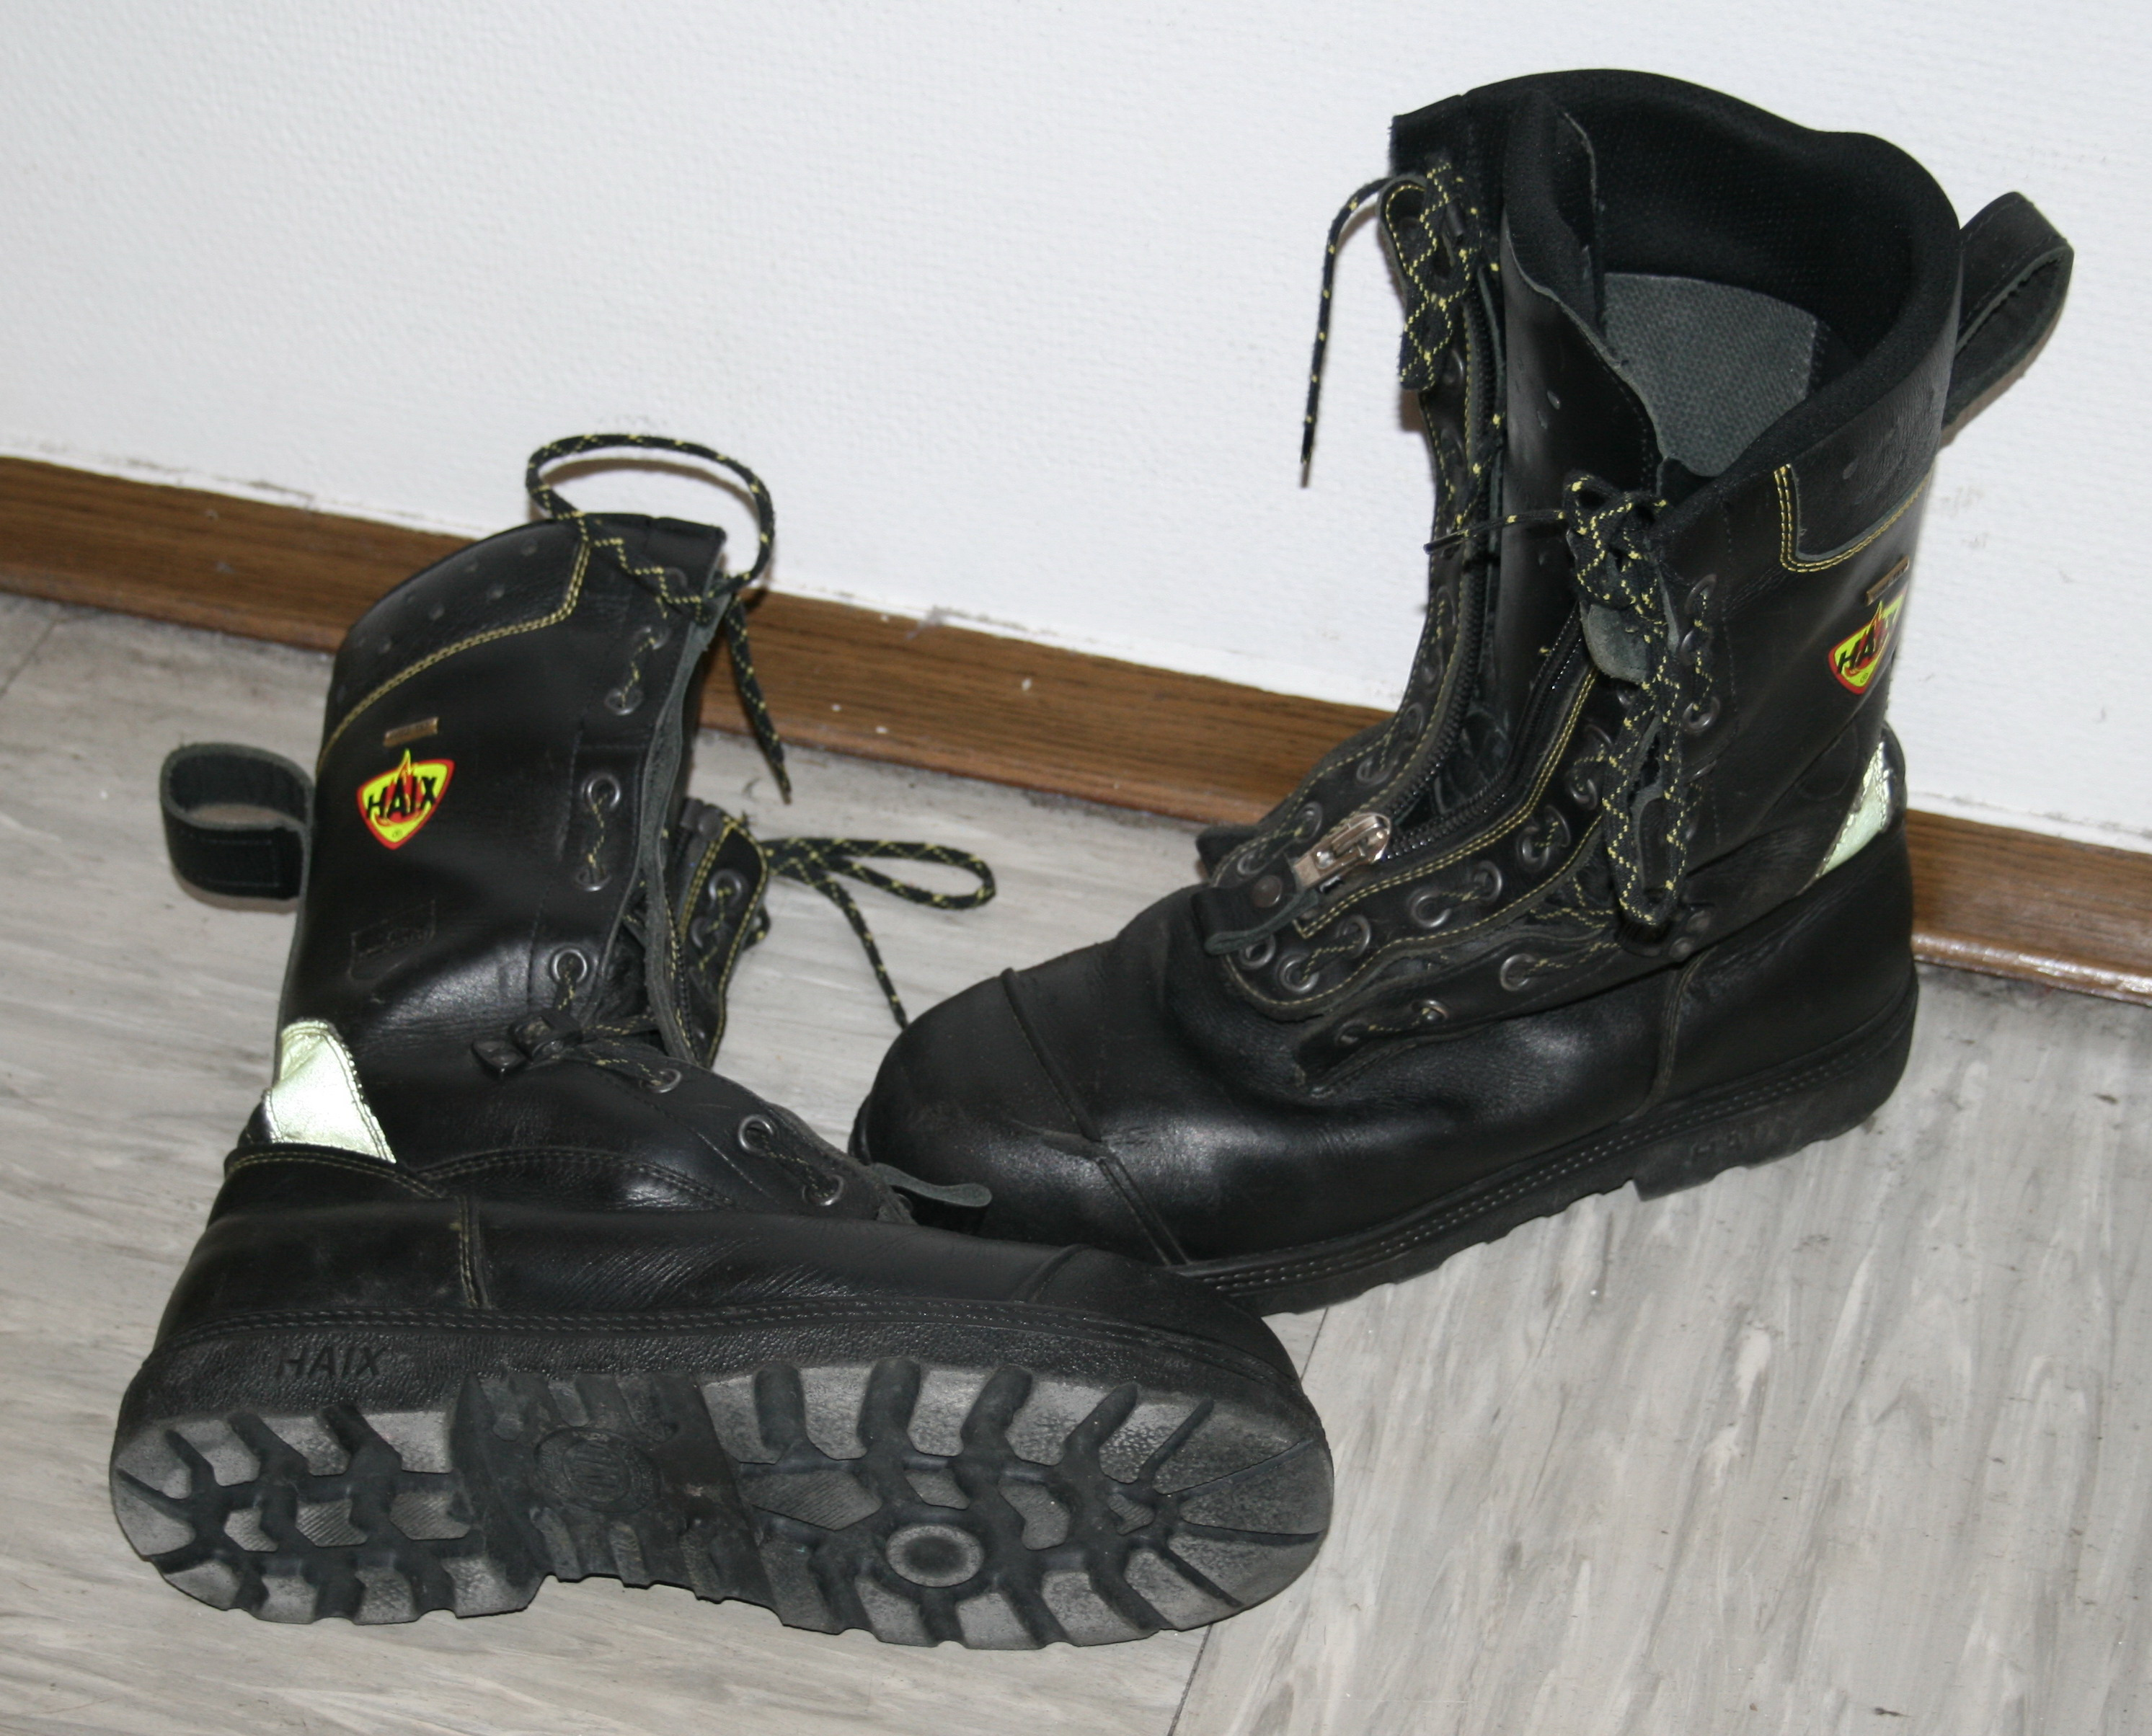 Steel Toe Shoes With High Arch Support For Heel Spurs